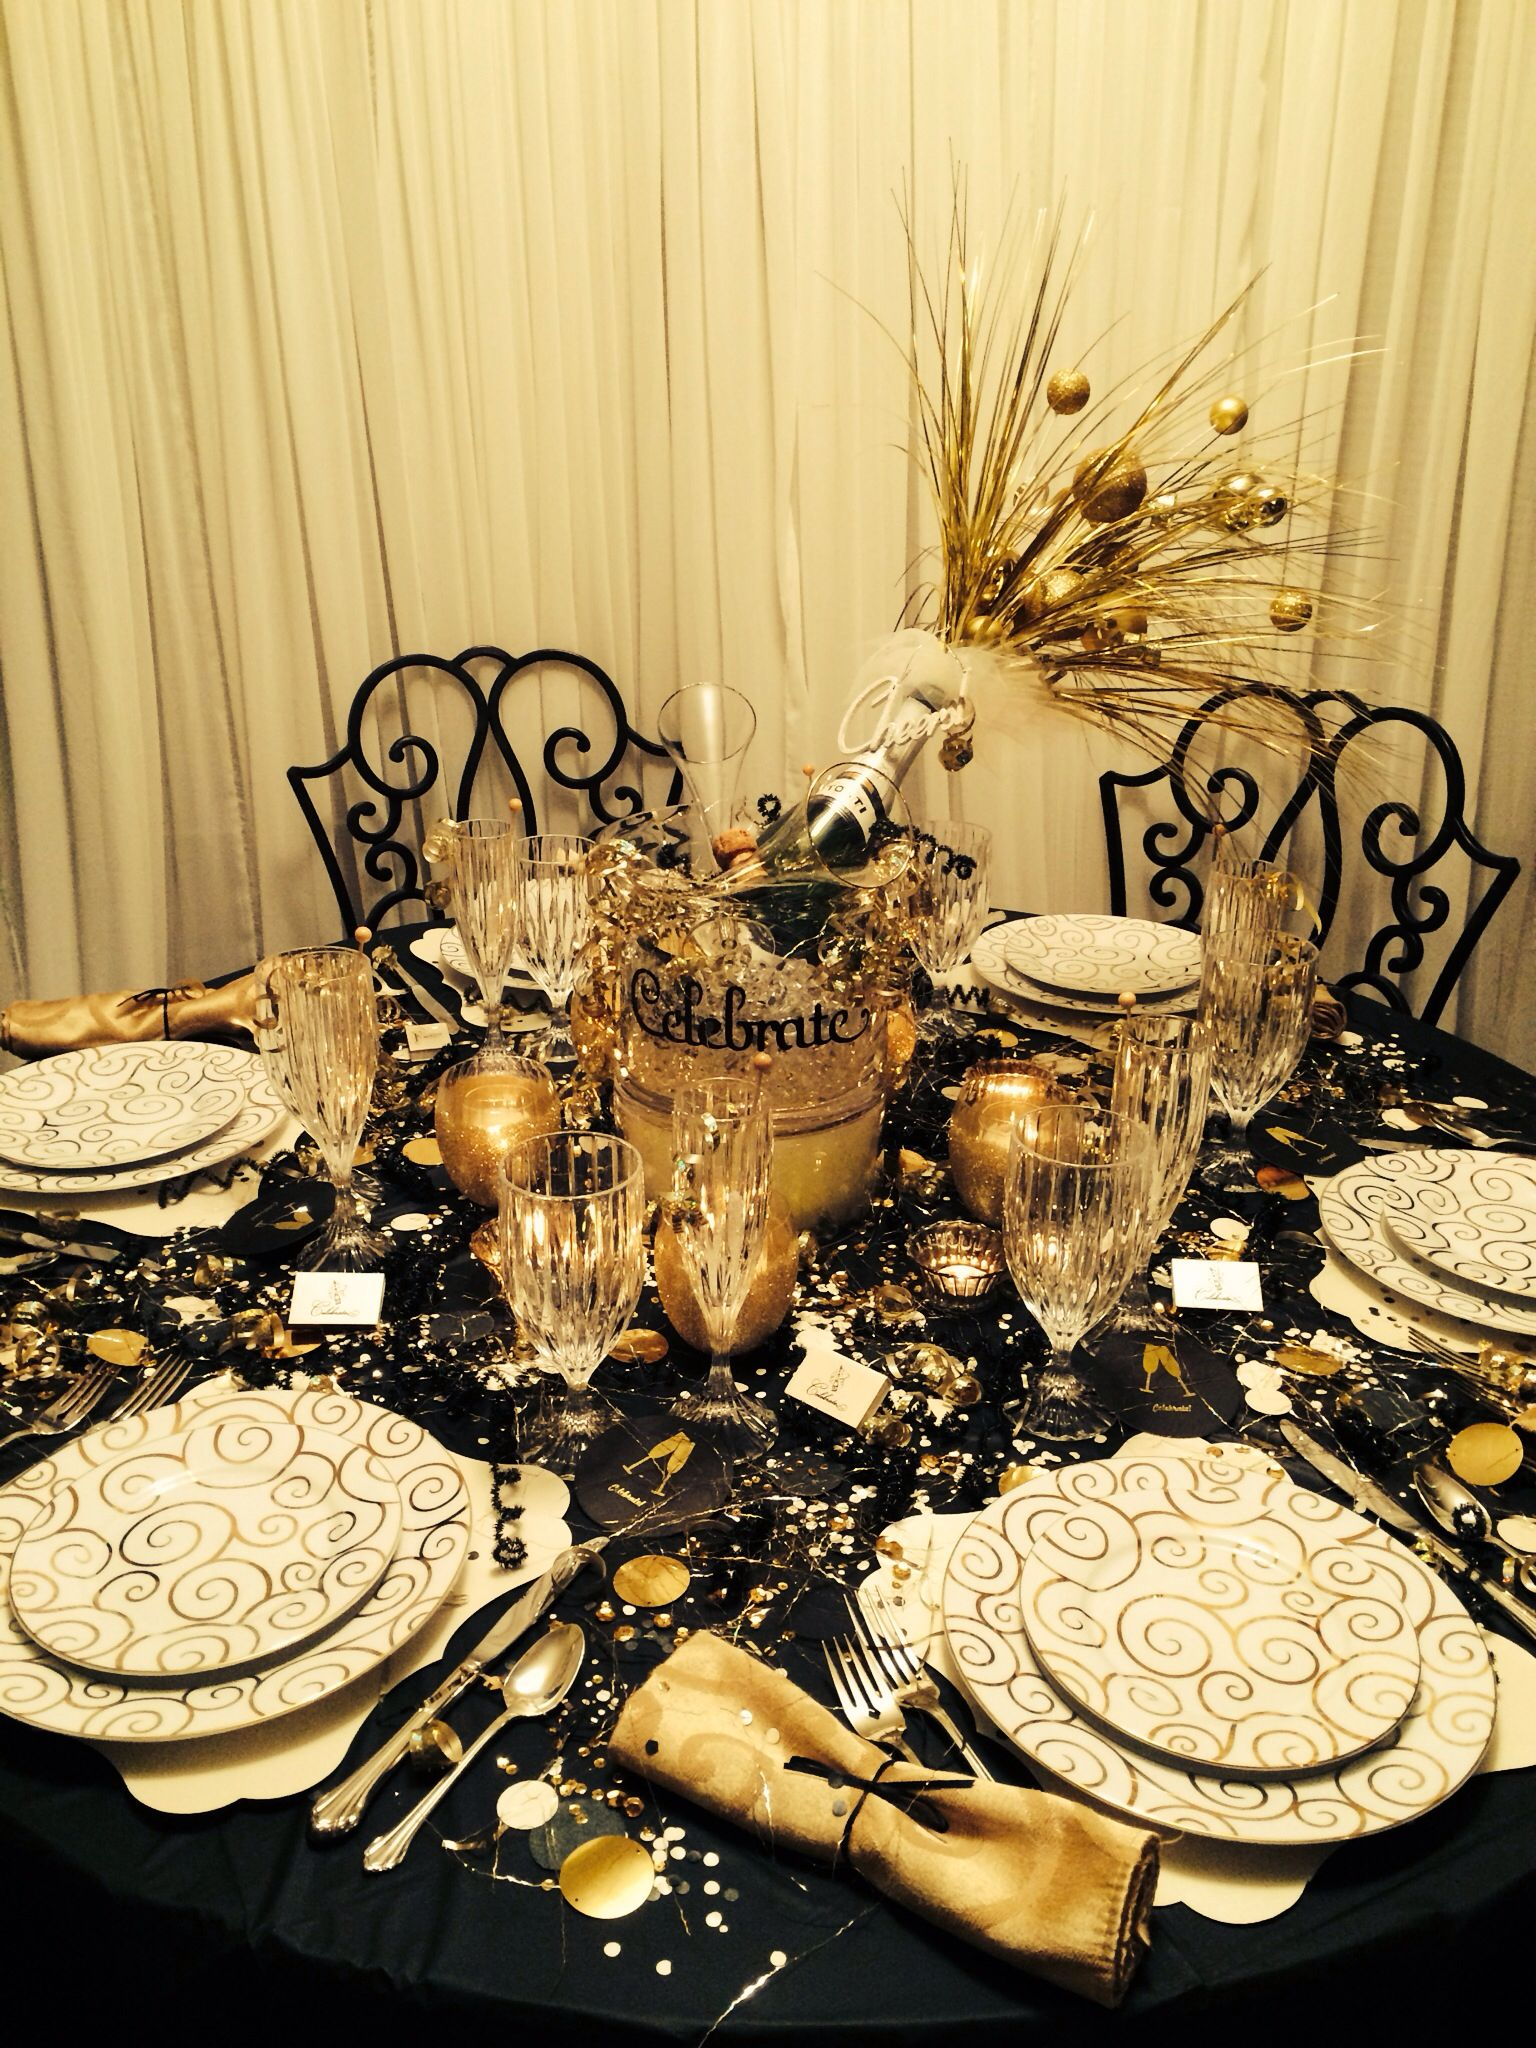 New Years Eve Wedding | New years eve decorations, New ...